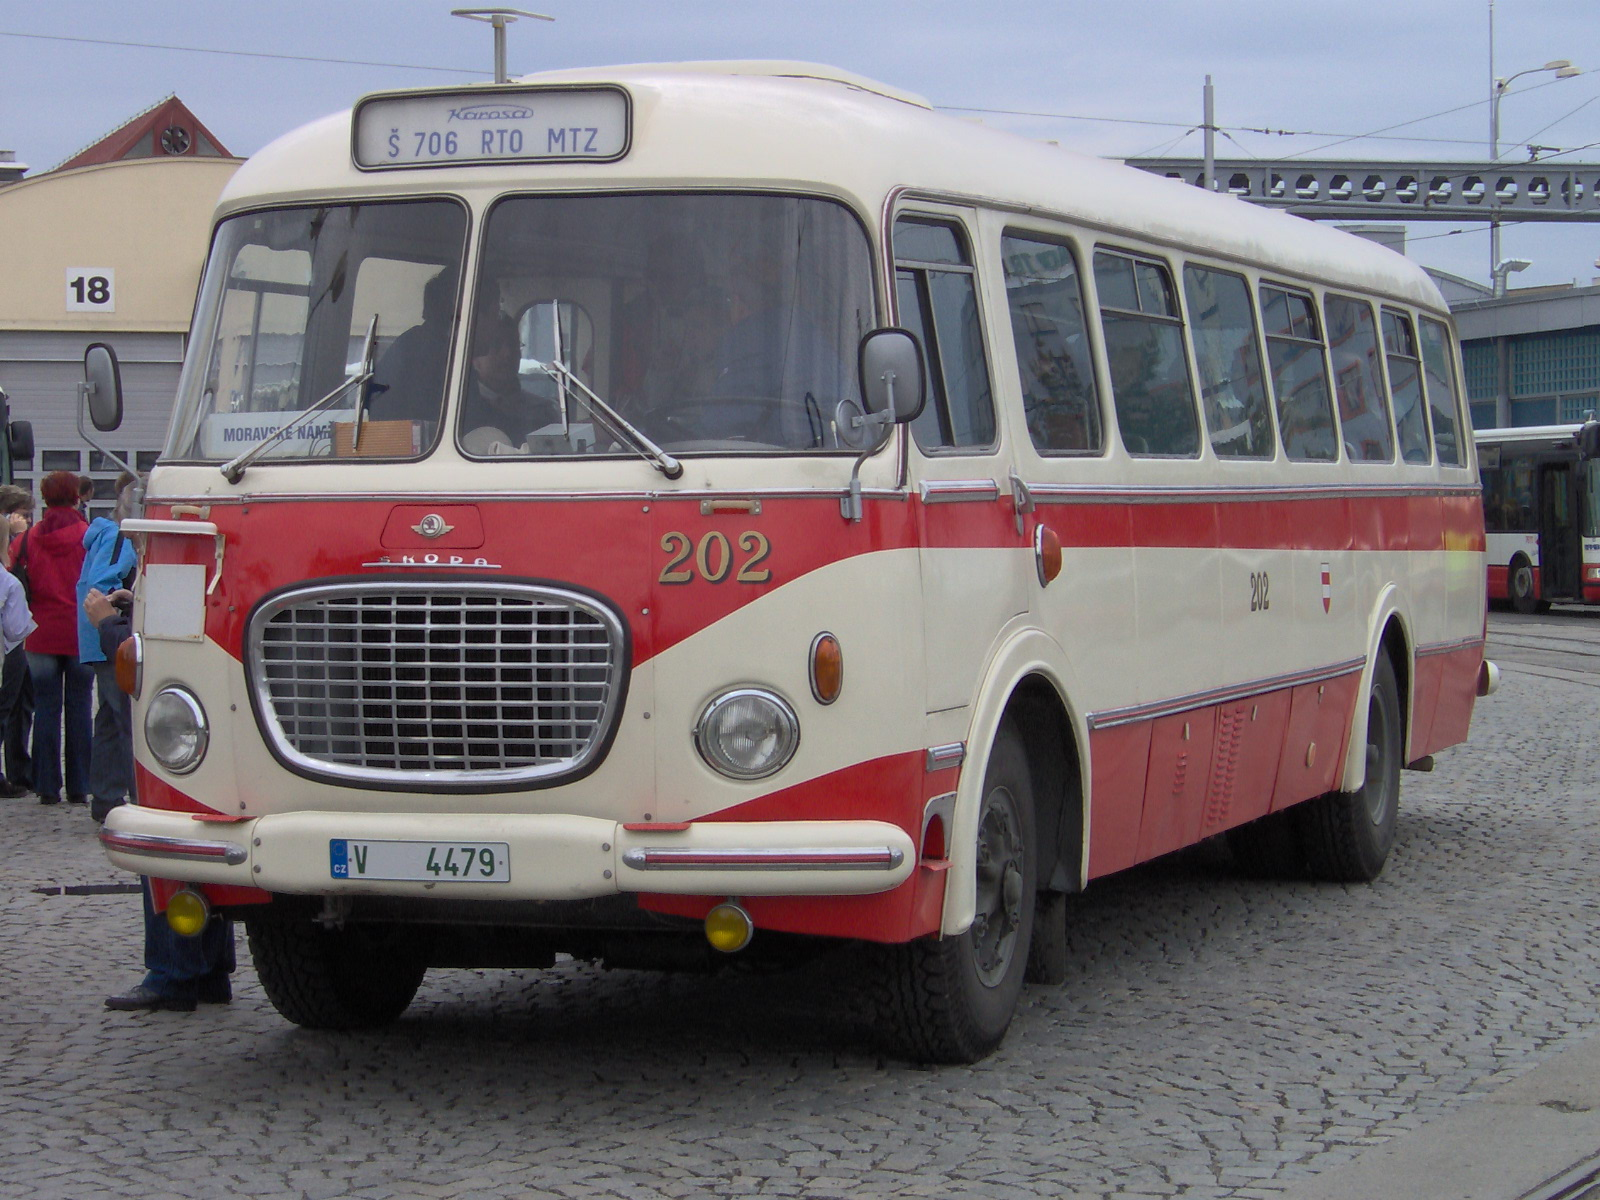 https://upload.wikimedia.org/wikipedia/commons/3/3e/Bus_706RTO_Brno.jpg